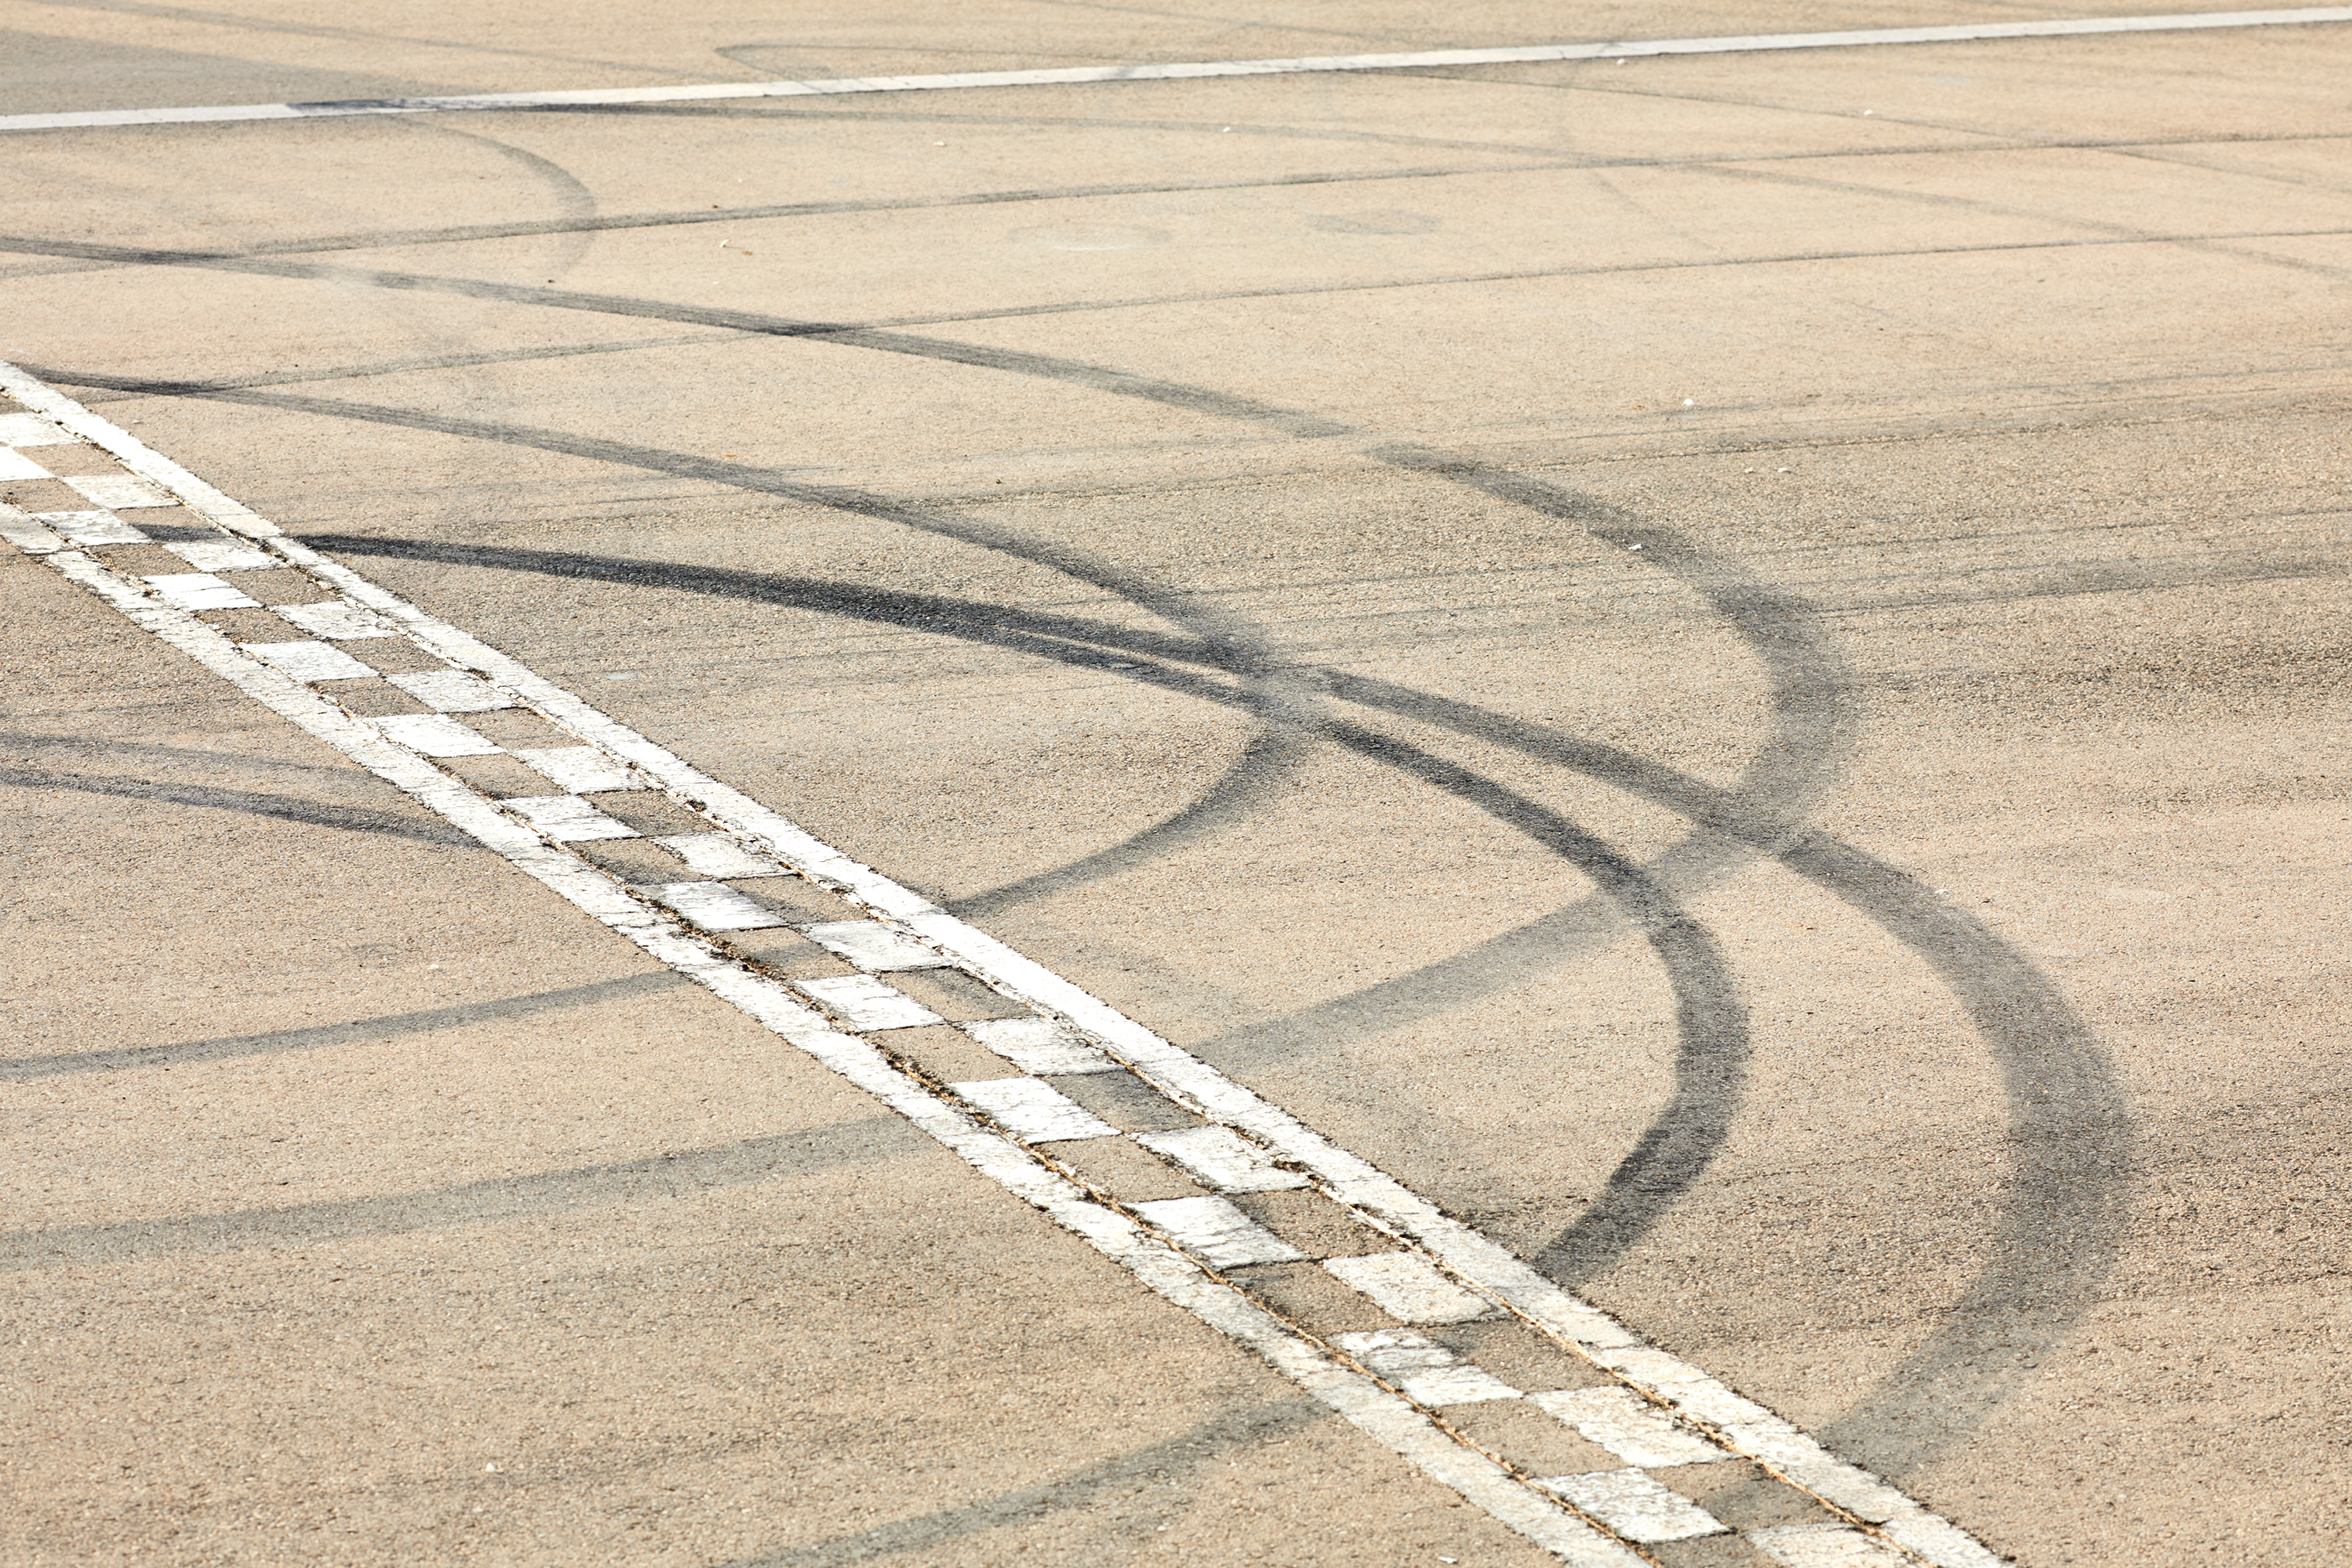 The start line at Reem International Circuit, the track in Riyadh where Saudi race-car driver Aseel al-Hamad took her maiden lap in her home country.